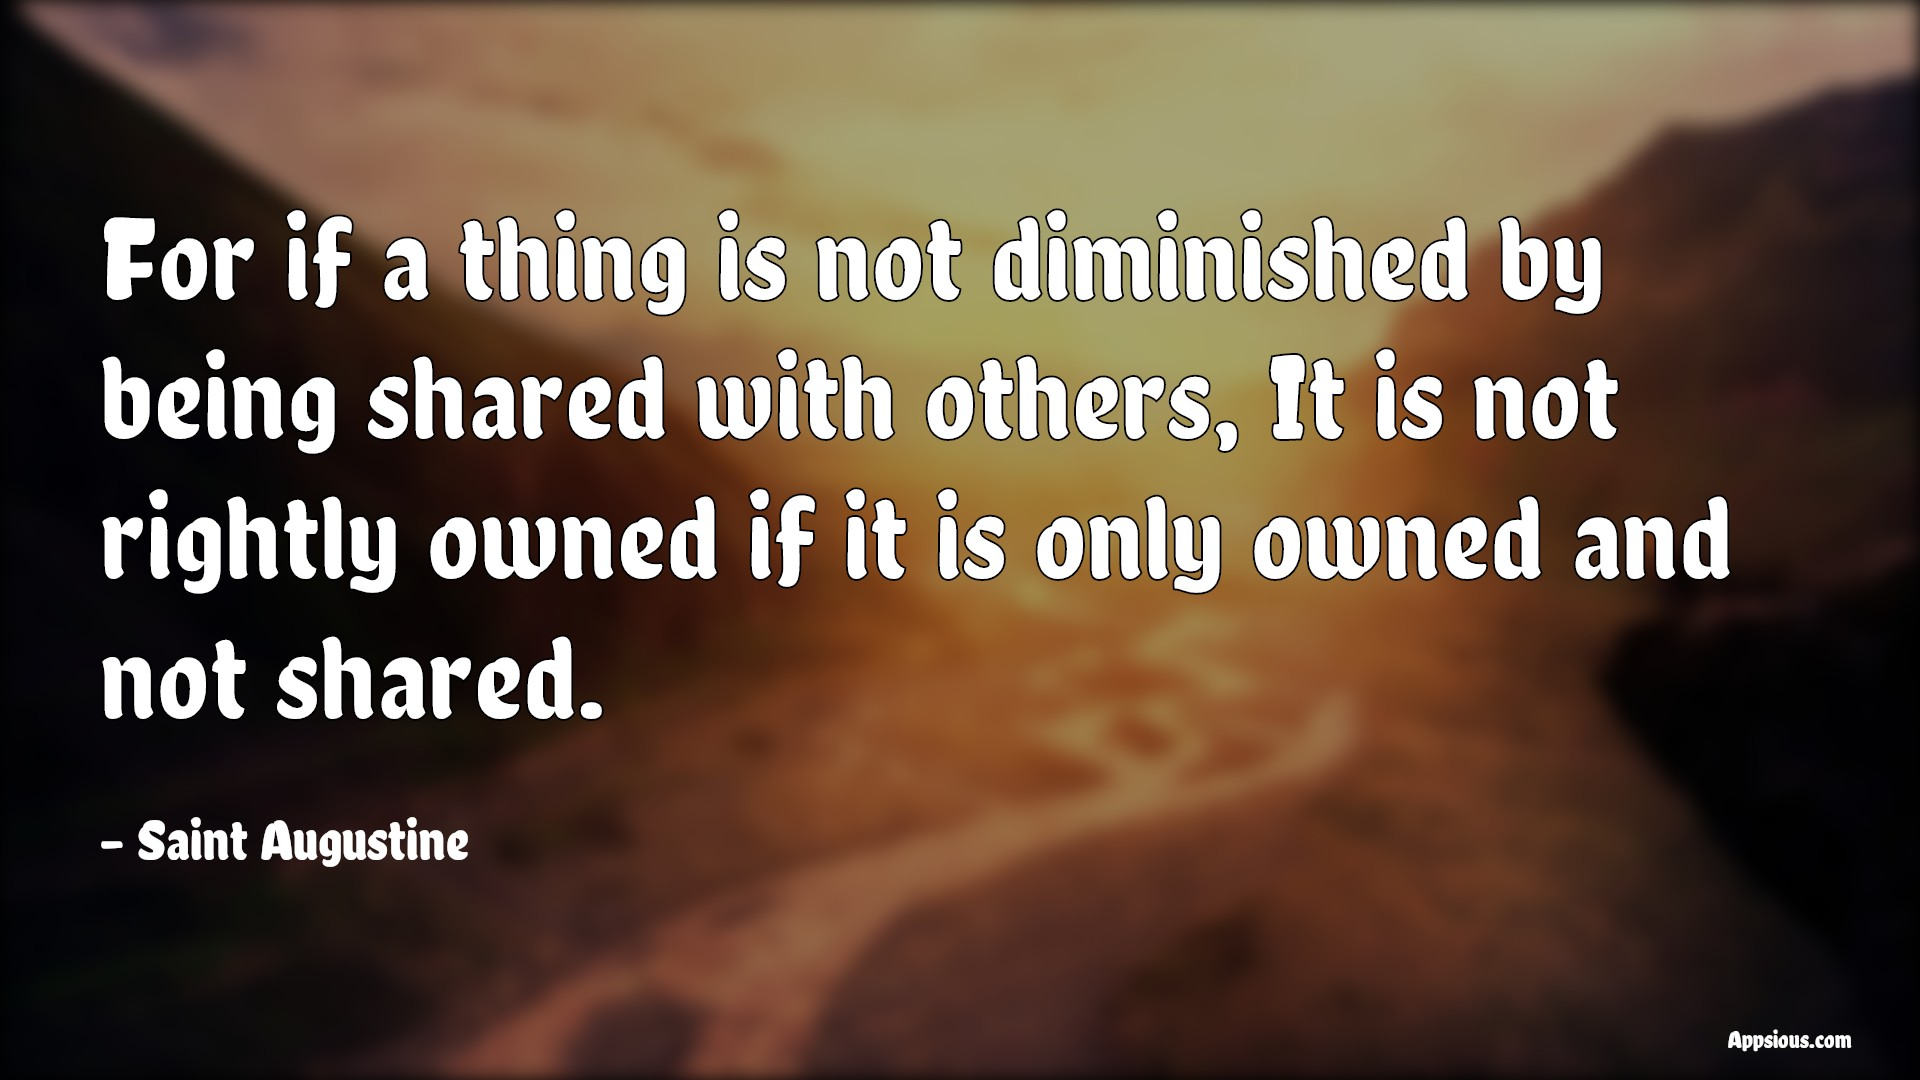 For if a thing is not diminished by being shared with others, It is not rightly owned if it is only owned and not shared.